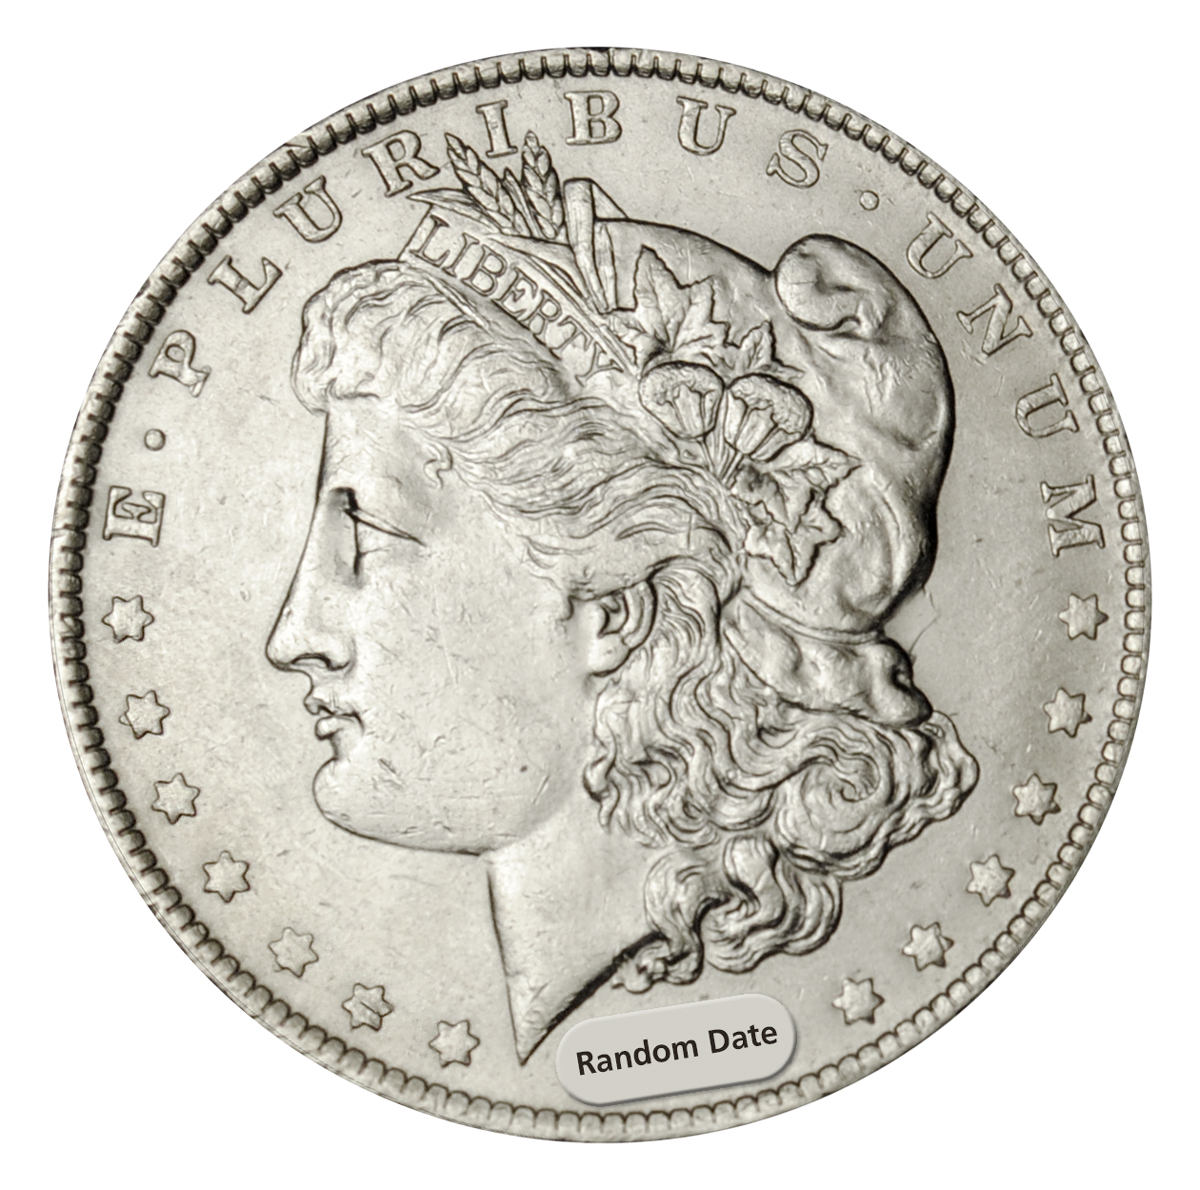 Random Date 1878-1904 Morgan Silver Dollar - Choice AU